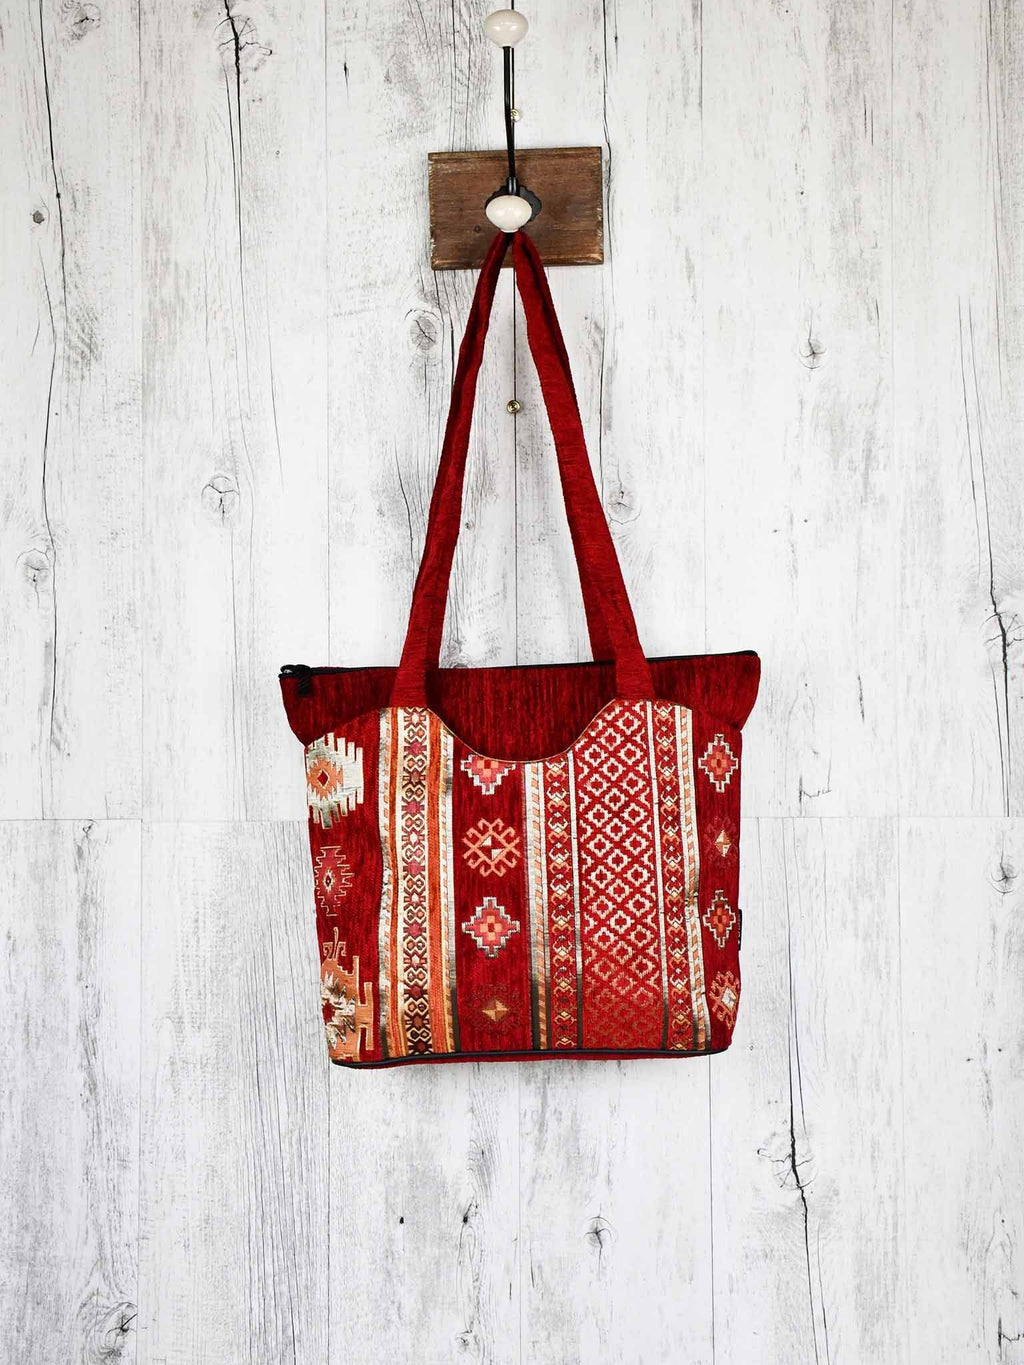 Turkish Handbag Tote Aztec Red Textile Sydney Grand Bazaar